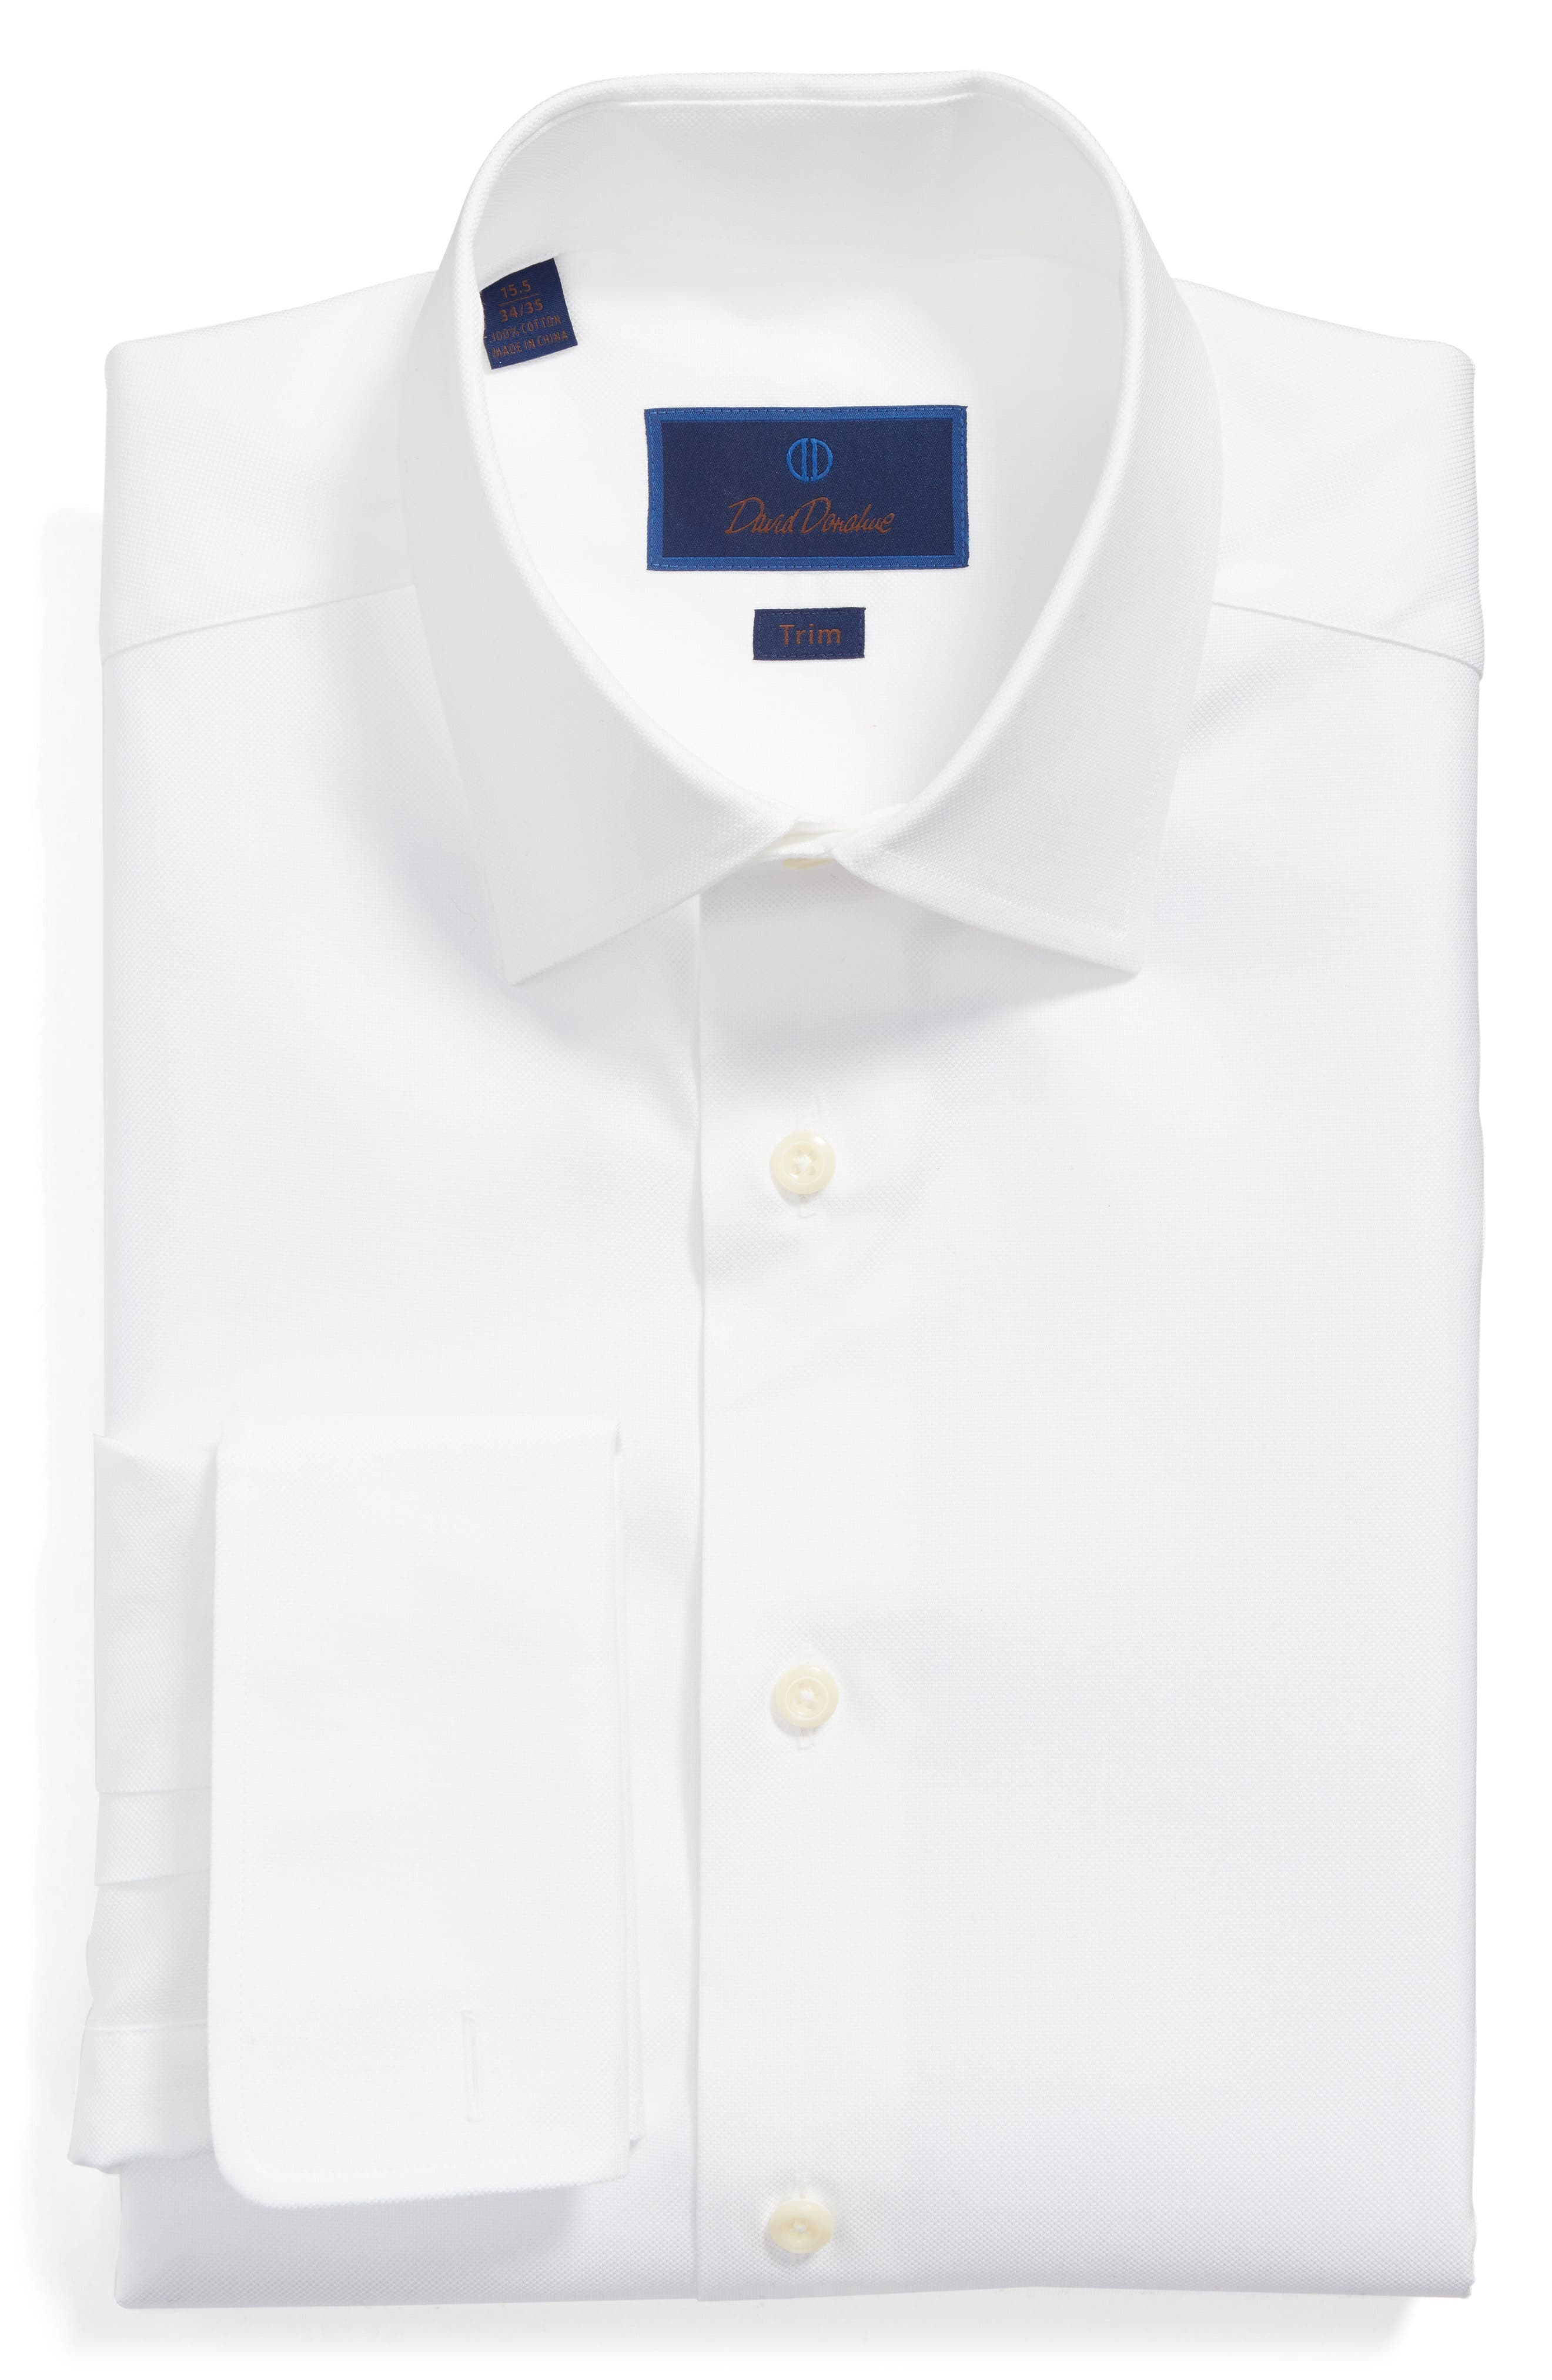 Main Image - David Donahue Trim Fit Solid French Cuff Dress Shirt